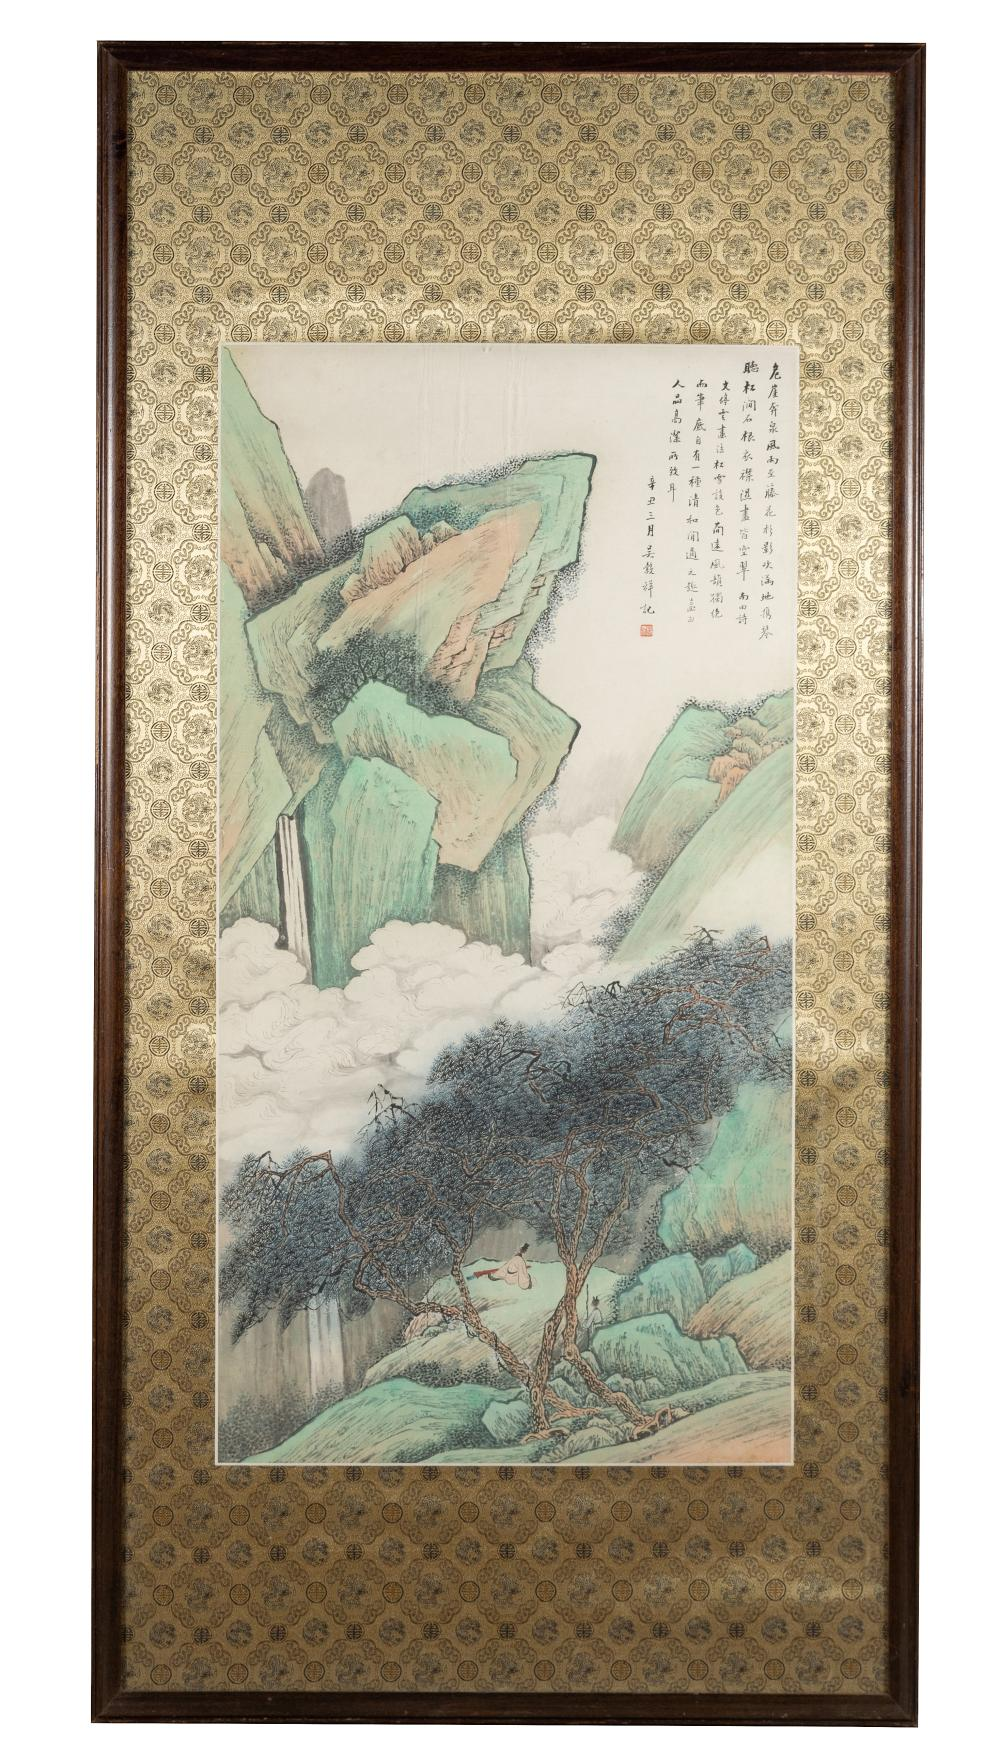 FRAMED LANDSCAPE PAINTING BY WU GUXIANG